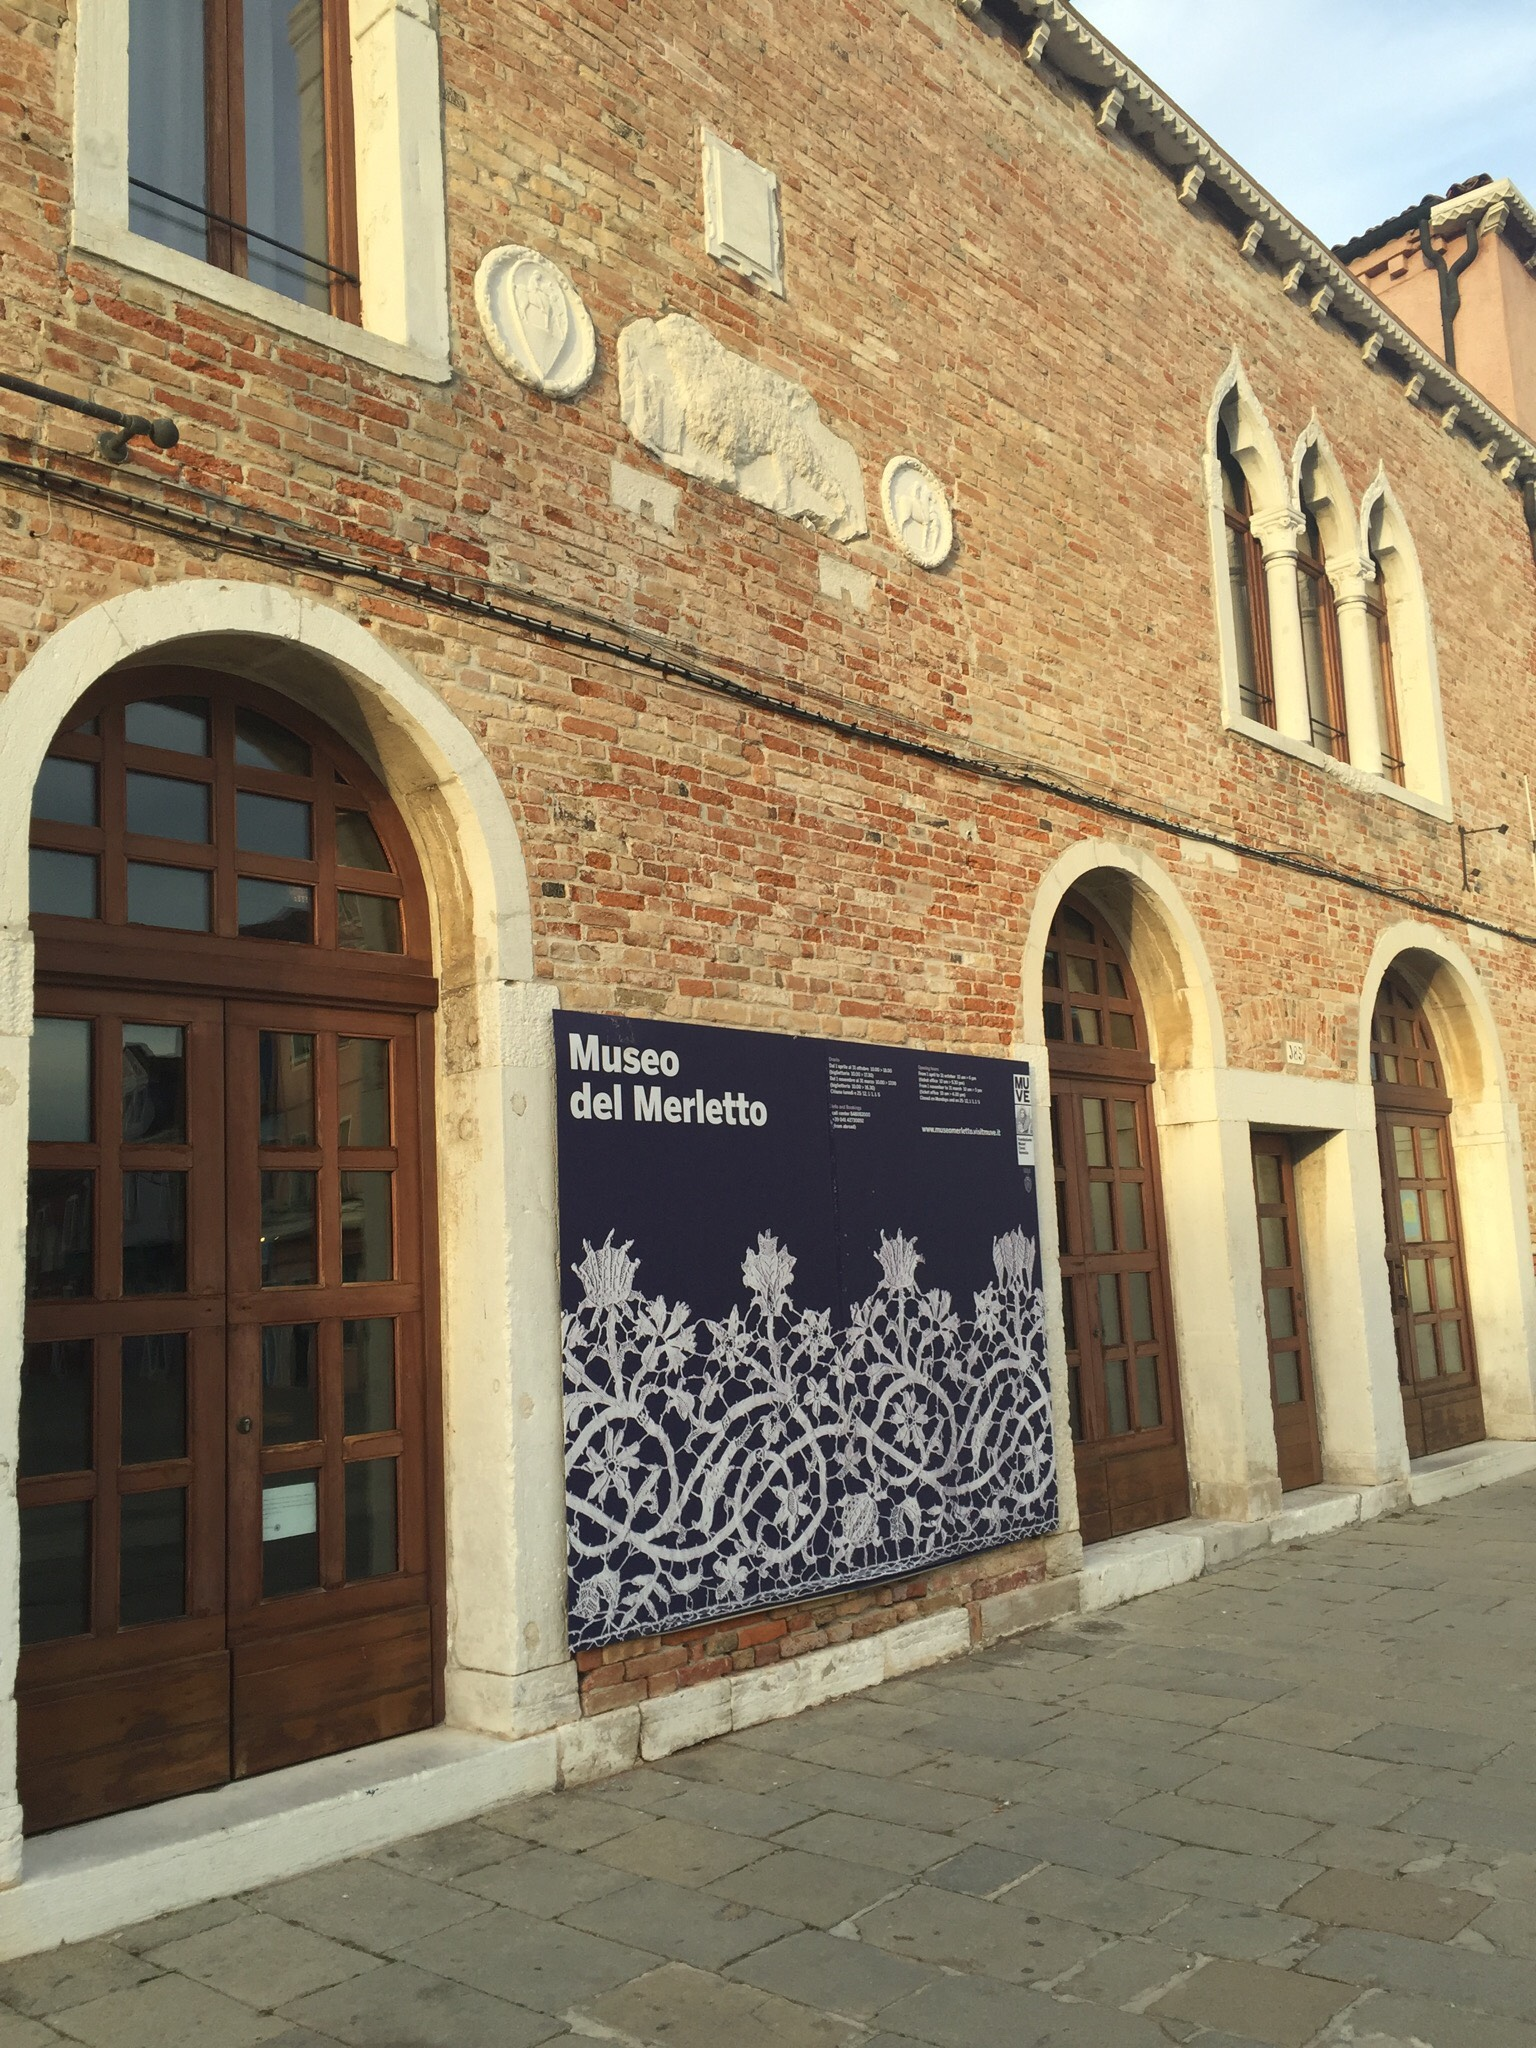 """"""" Lace museum in Burano, Italy, where I first came across using lace as a possible fabric material, and the interesting history of weaving."""""""